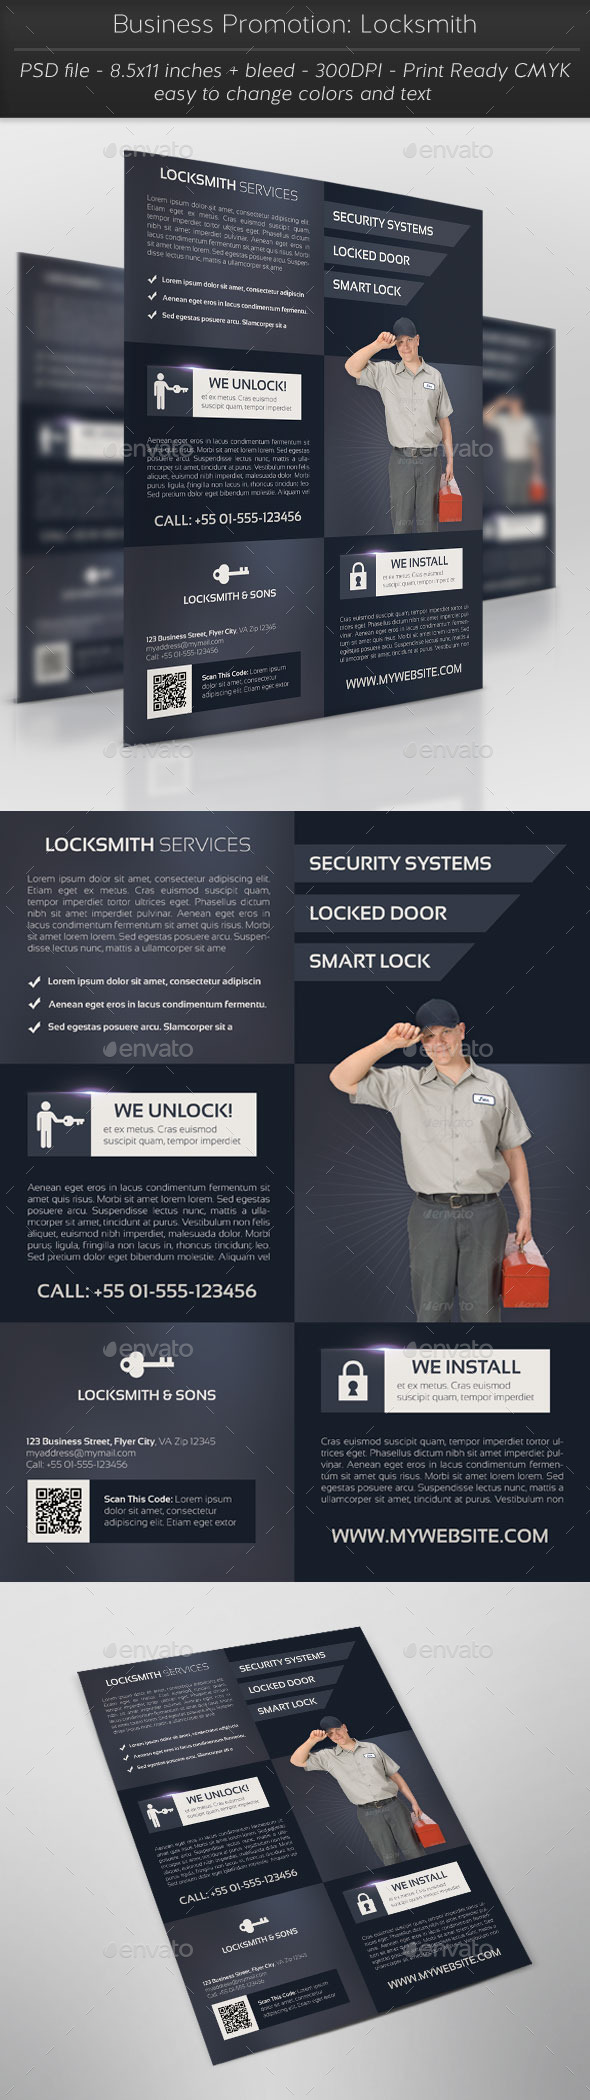 Business Promotion: Locksmith - Corporate Flyers